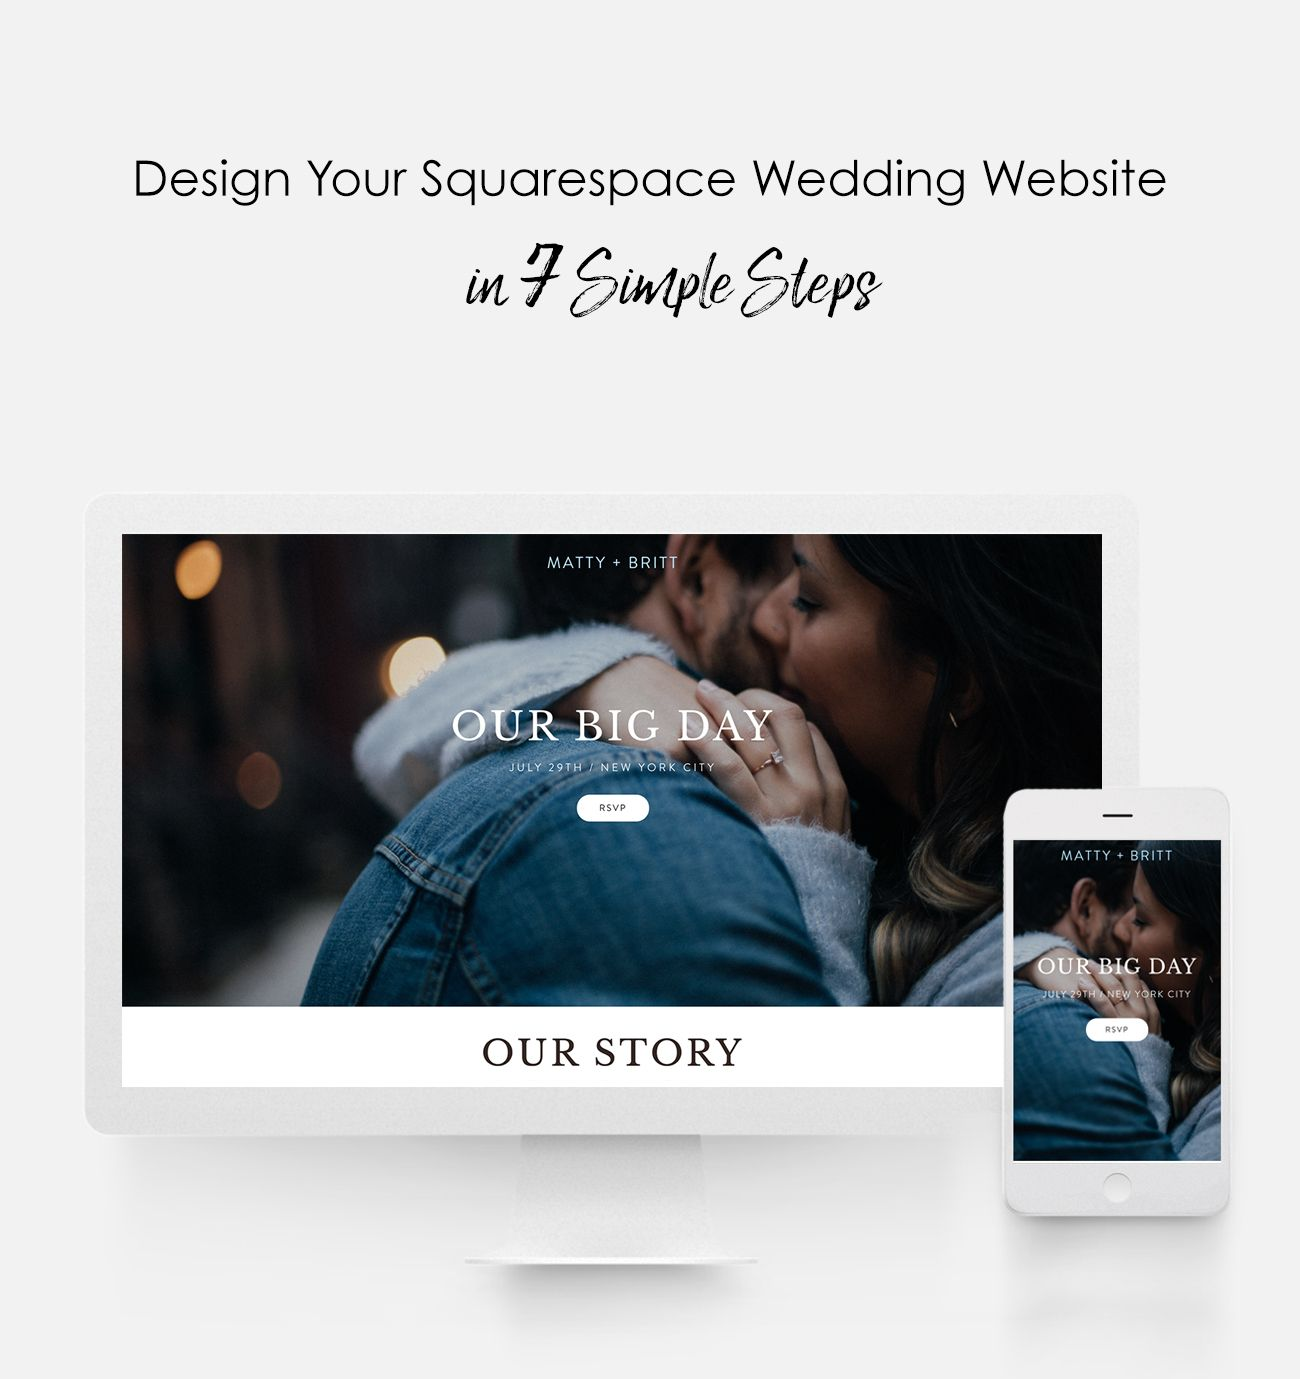 design your squarespace wedding website in 7 simple steps